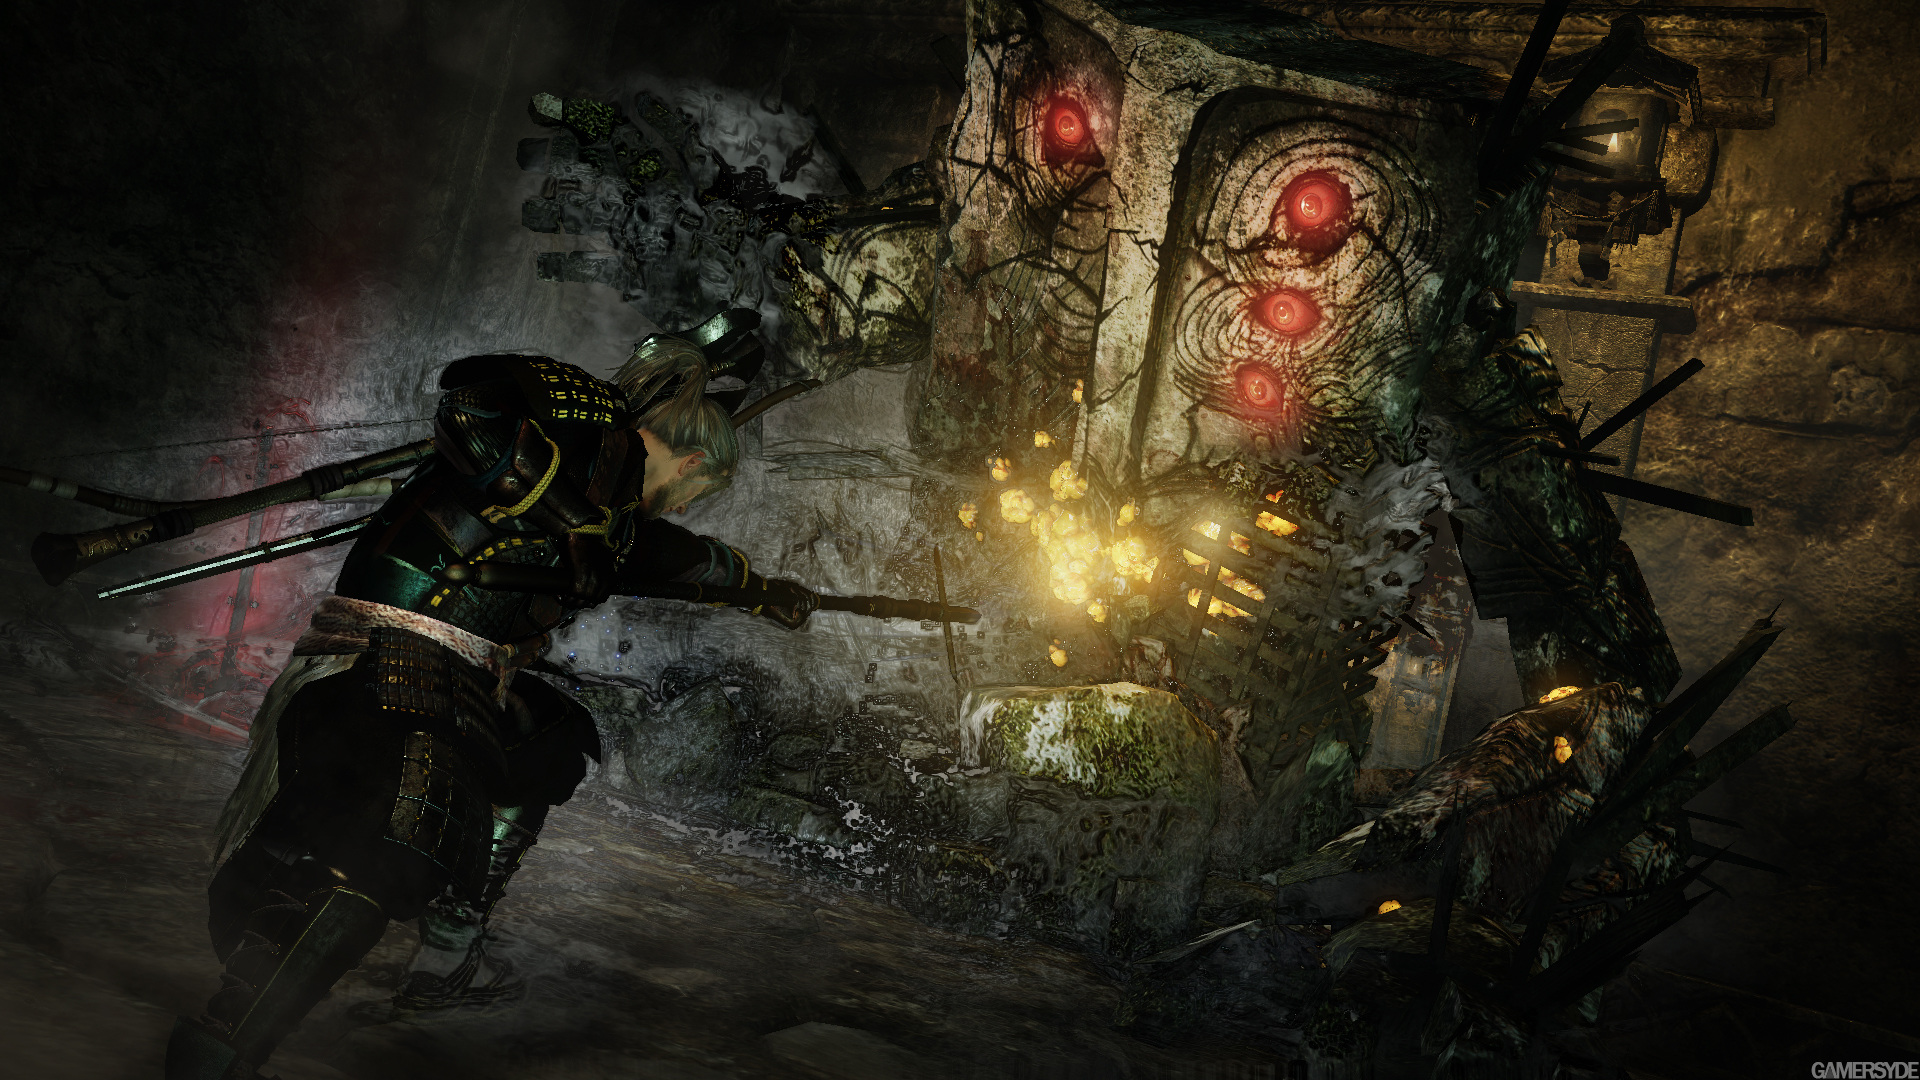 E3: Nioh trailer and images - Gamersyde